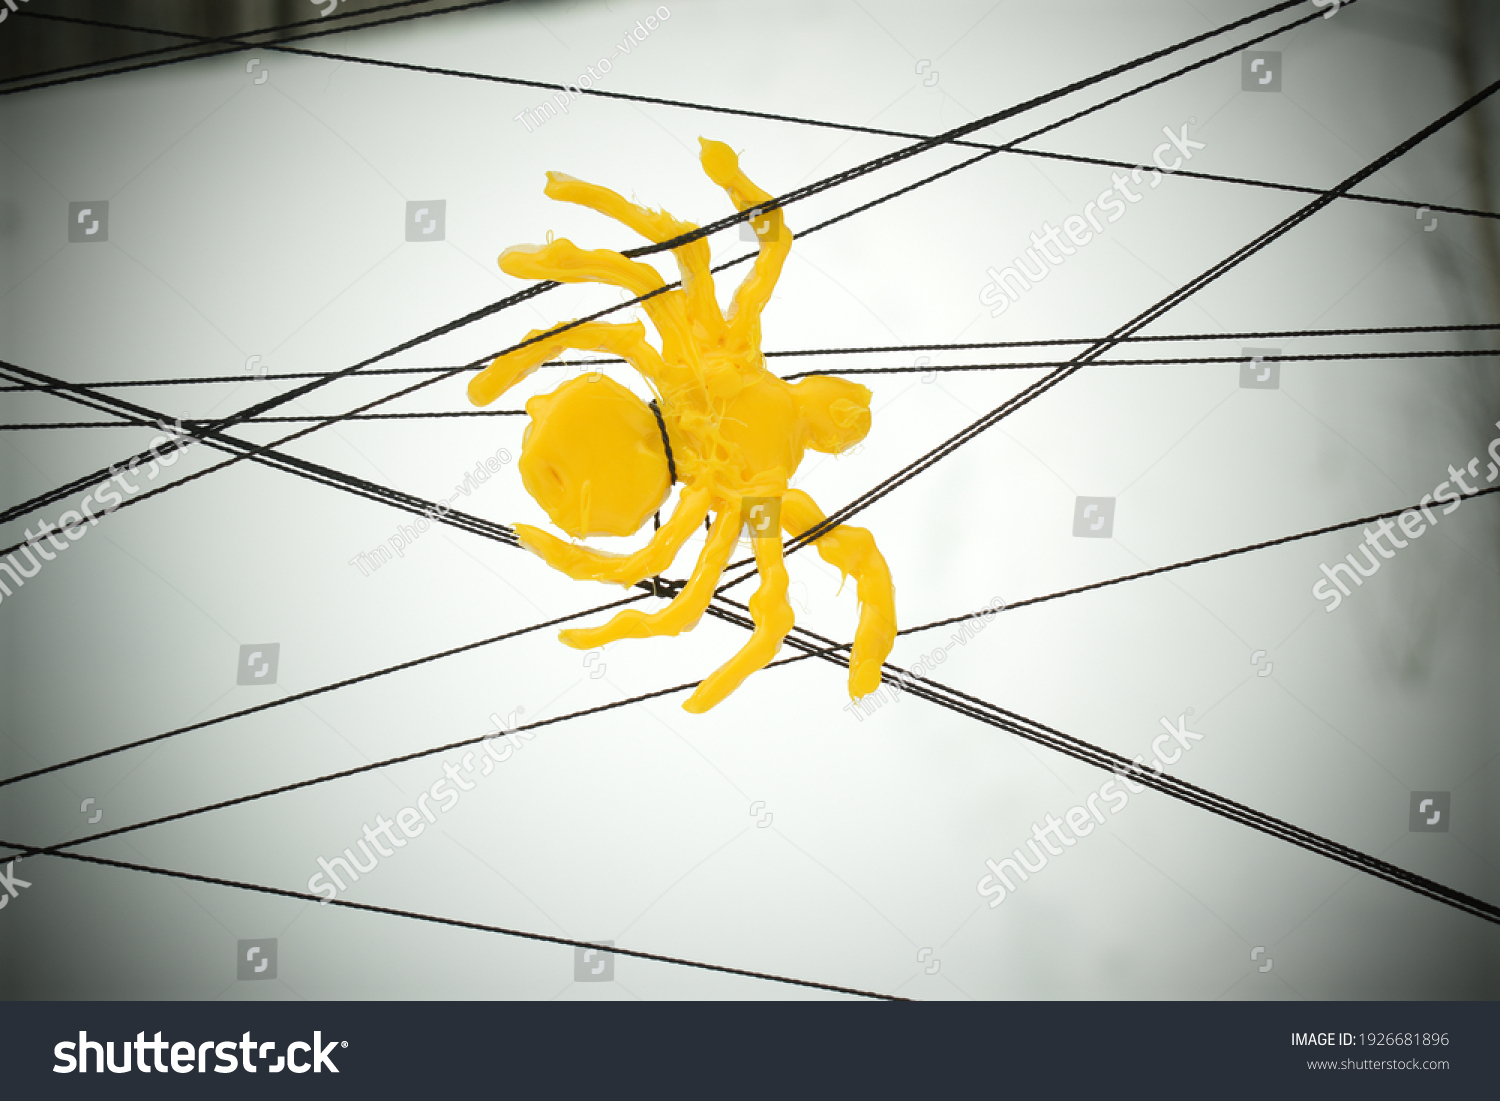 stock-photo-yellow-plastic-spider-cobweb